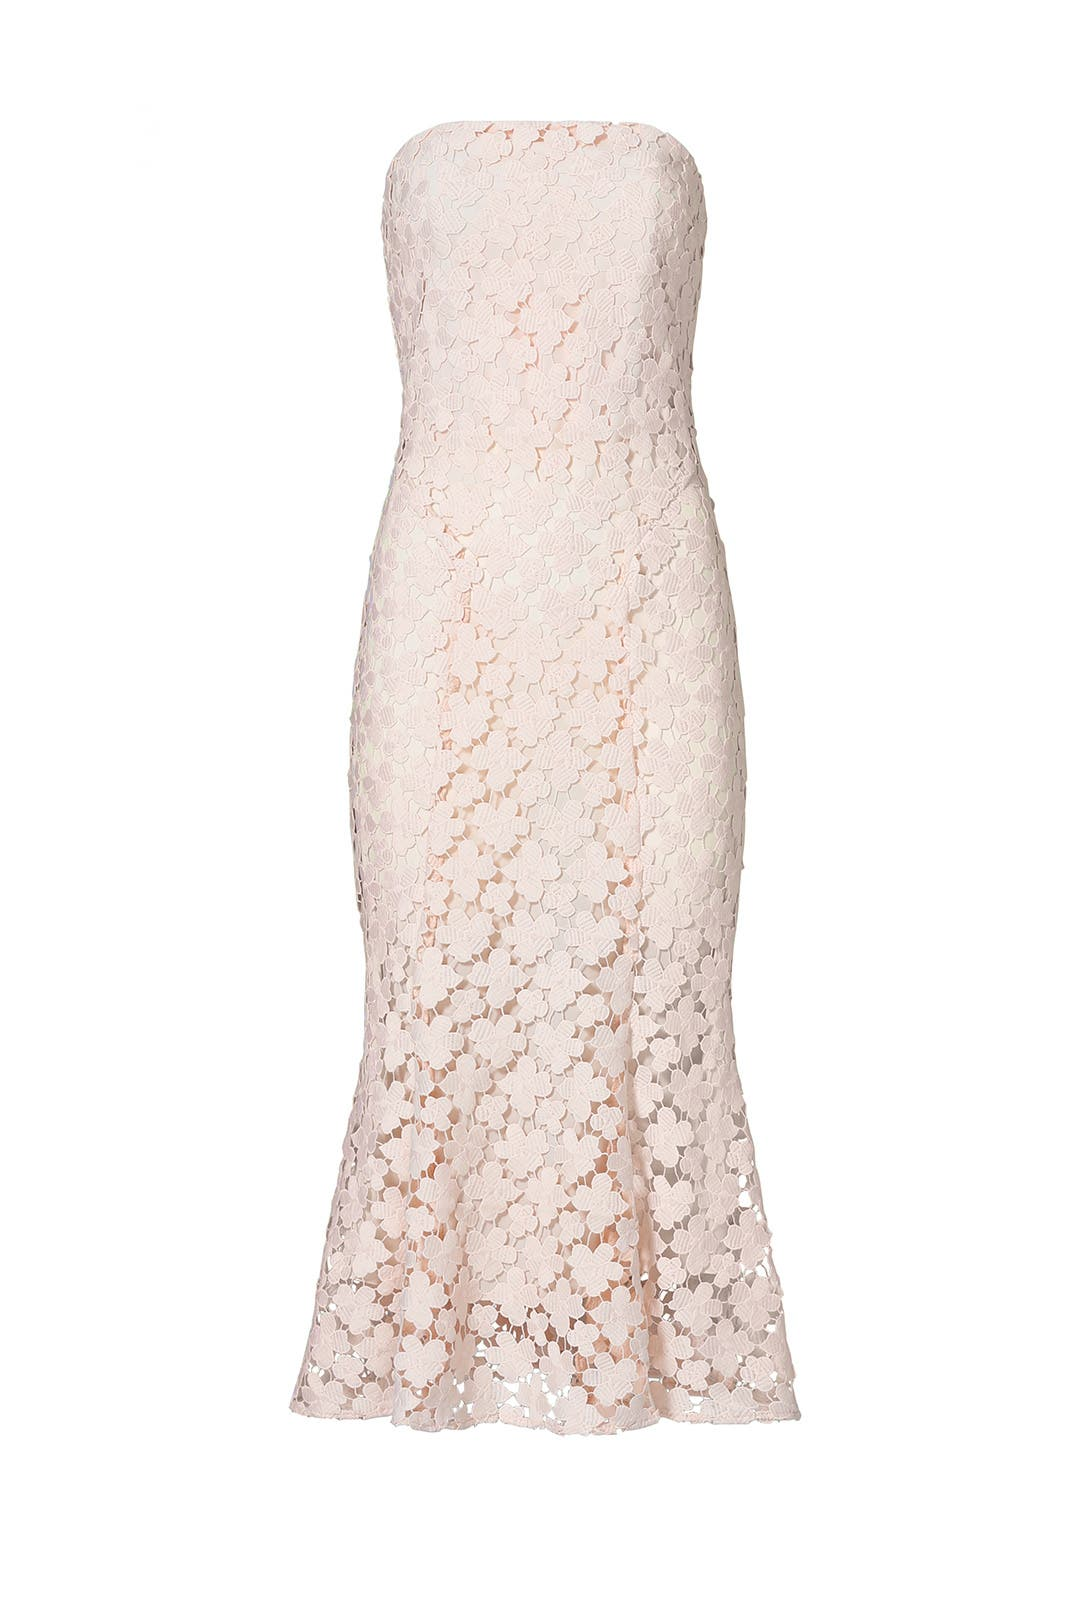 Blush Franklin Midi Dress by Shoshanna for $109 | Rent the Runway